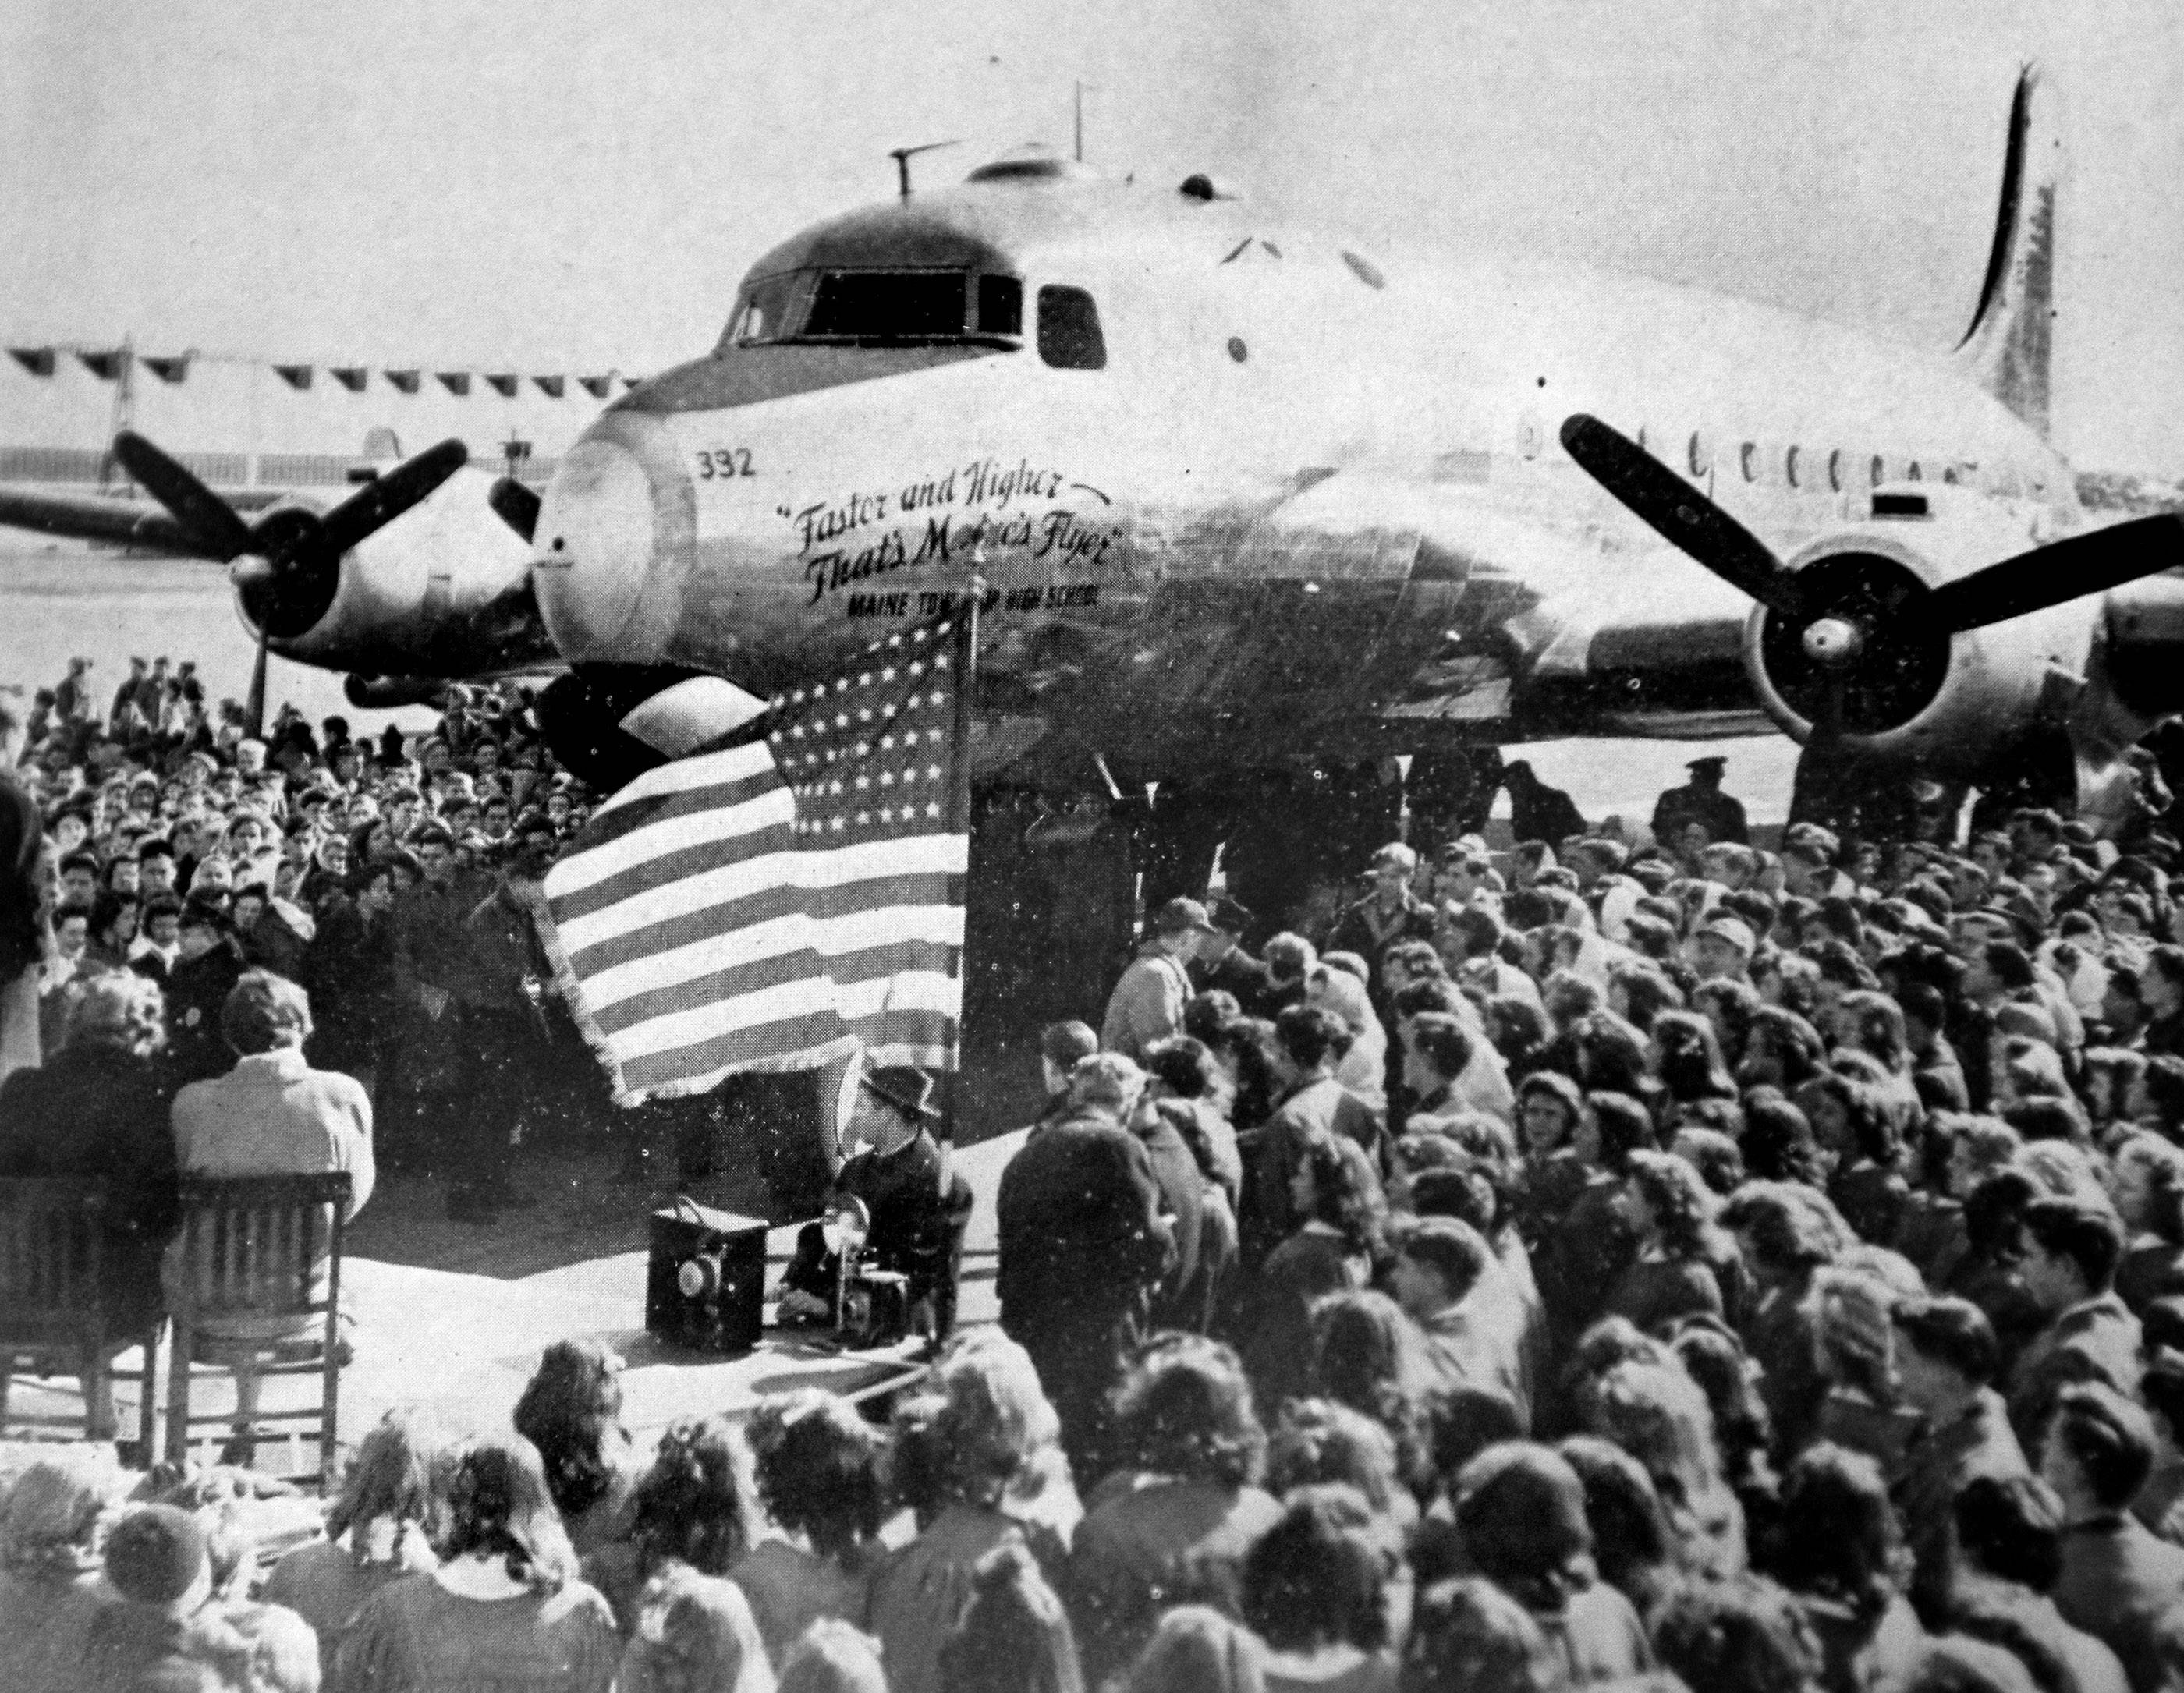 A C-54 airplane, named the Maine Flyer, was dedicated in 1945 at Douglas Aircraft Co. in honor of Maine Township High School students who sold more than $551,000 in war bonds in two weeks.